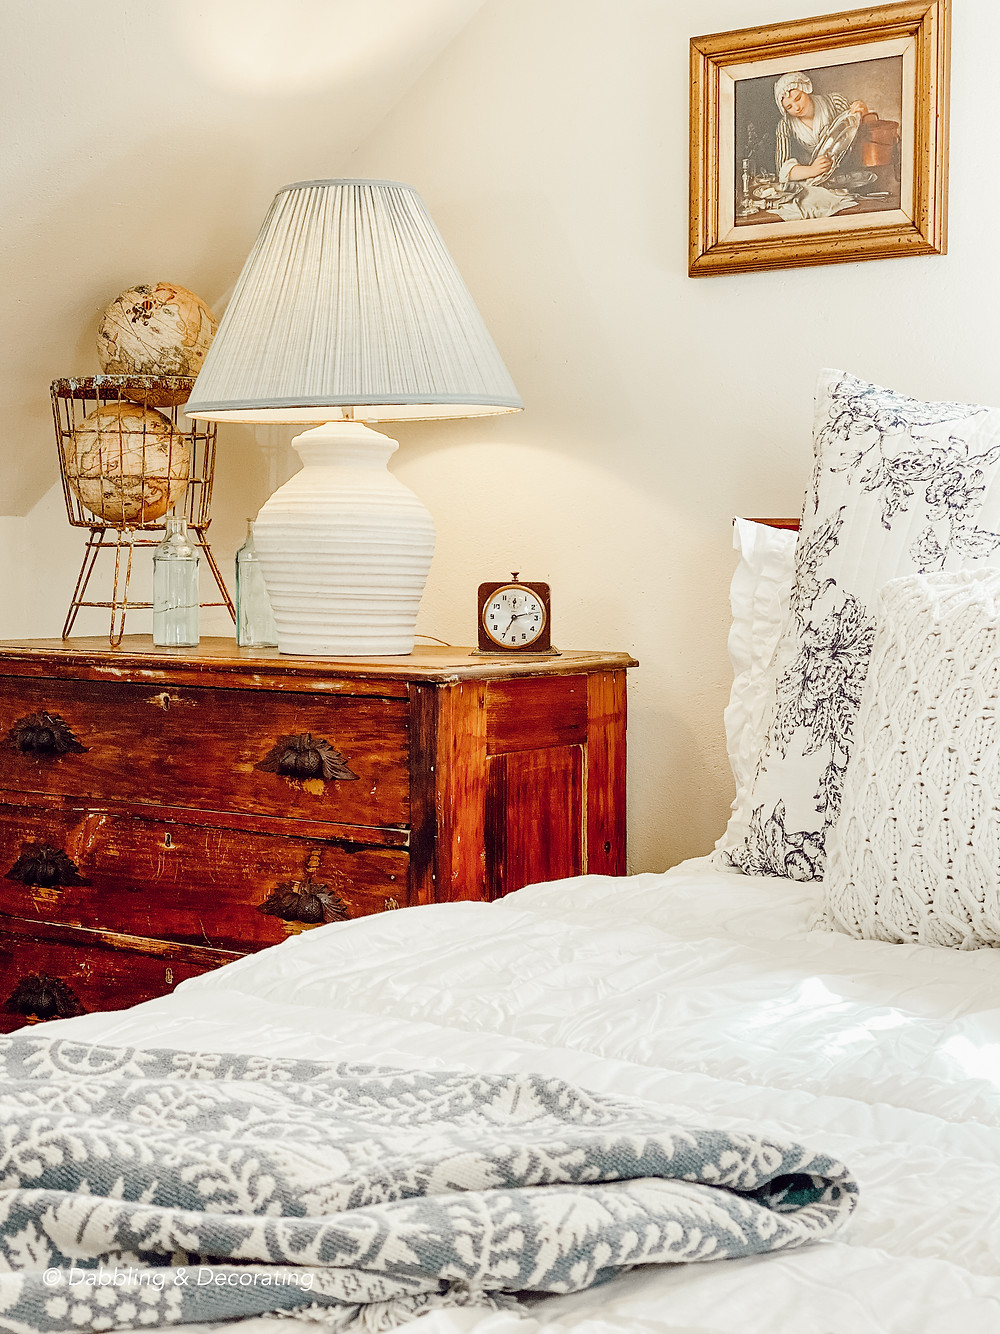 Glamping in our Attic Guest Bedrooms with Beddy's Bedding